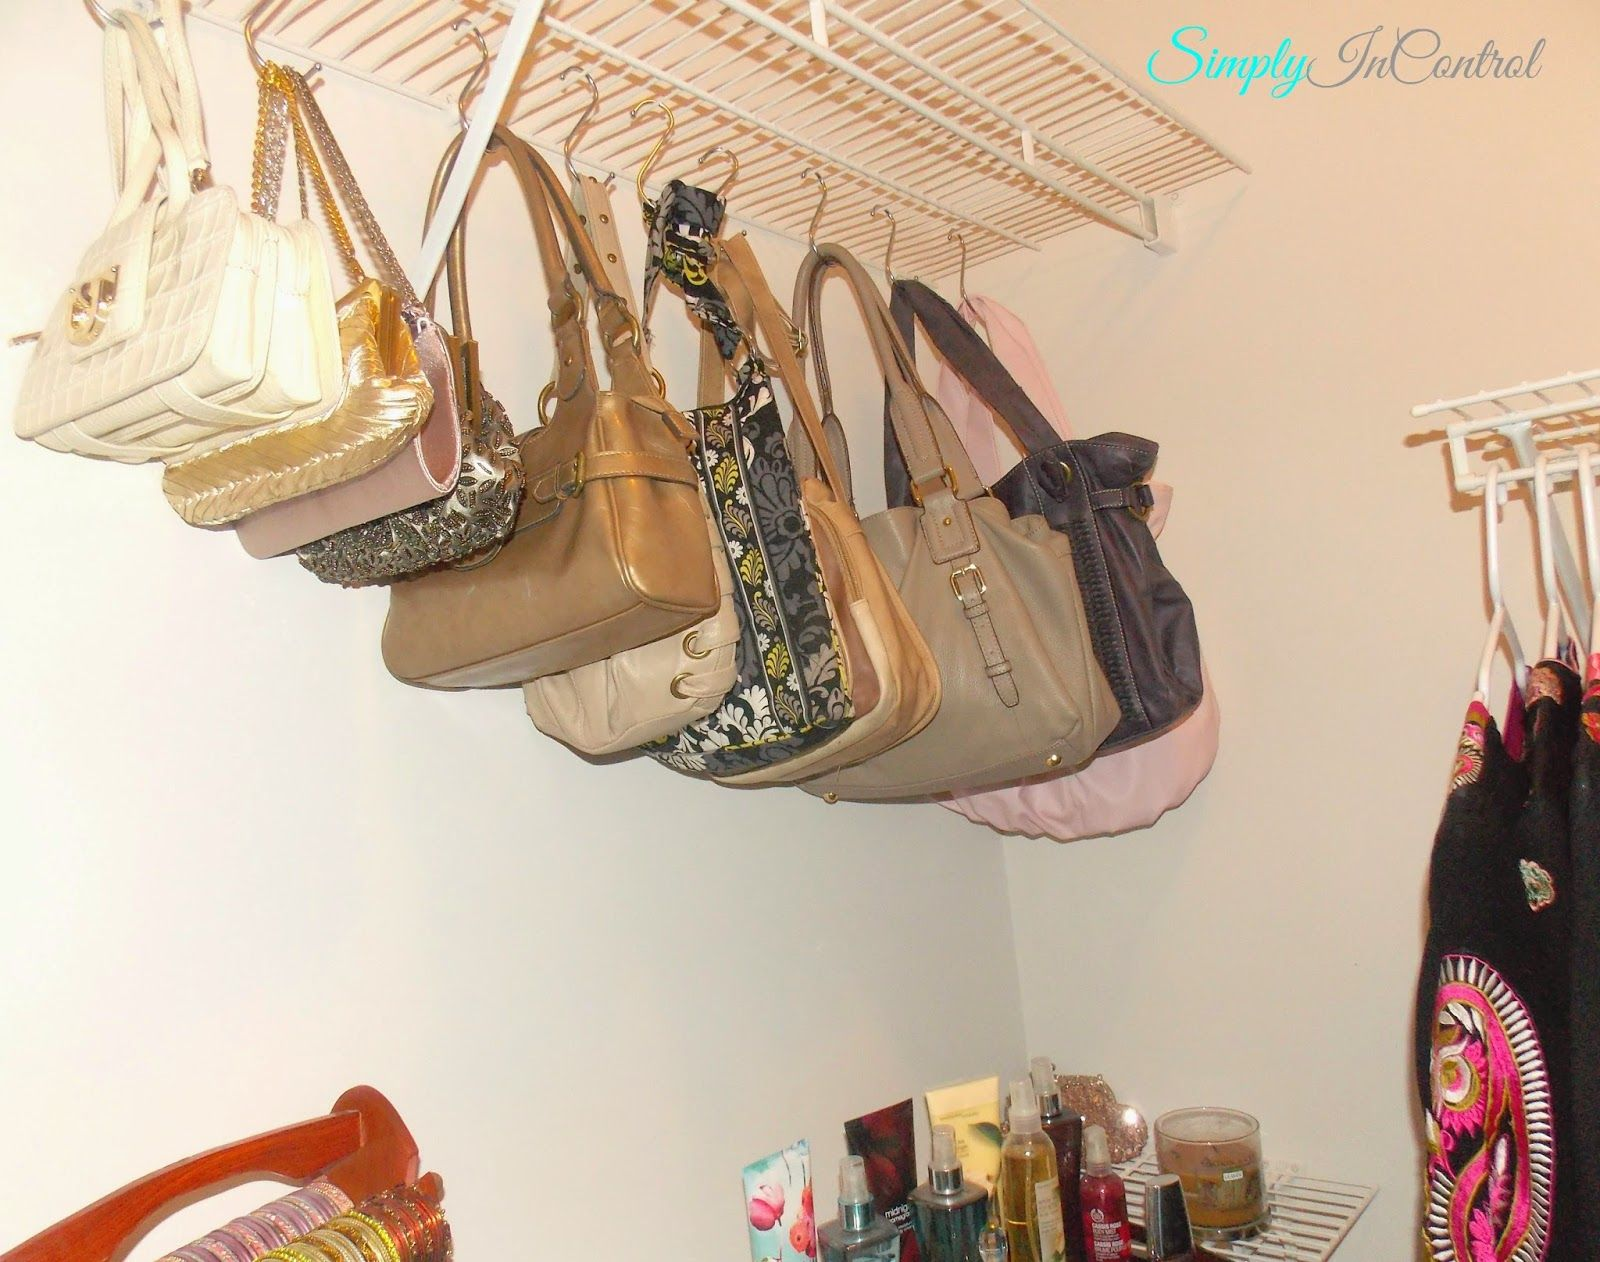 Captivating Closet Organization   How To Give Your Apartment Closet A Boutique Feel!  Use S